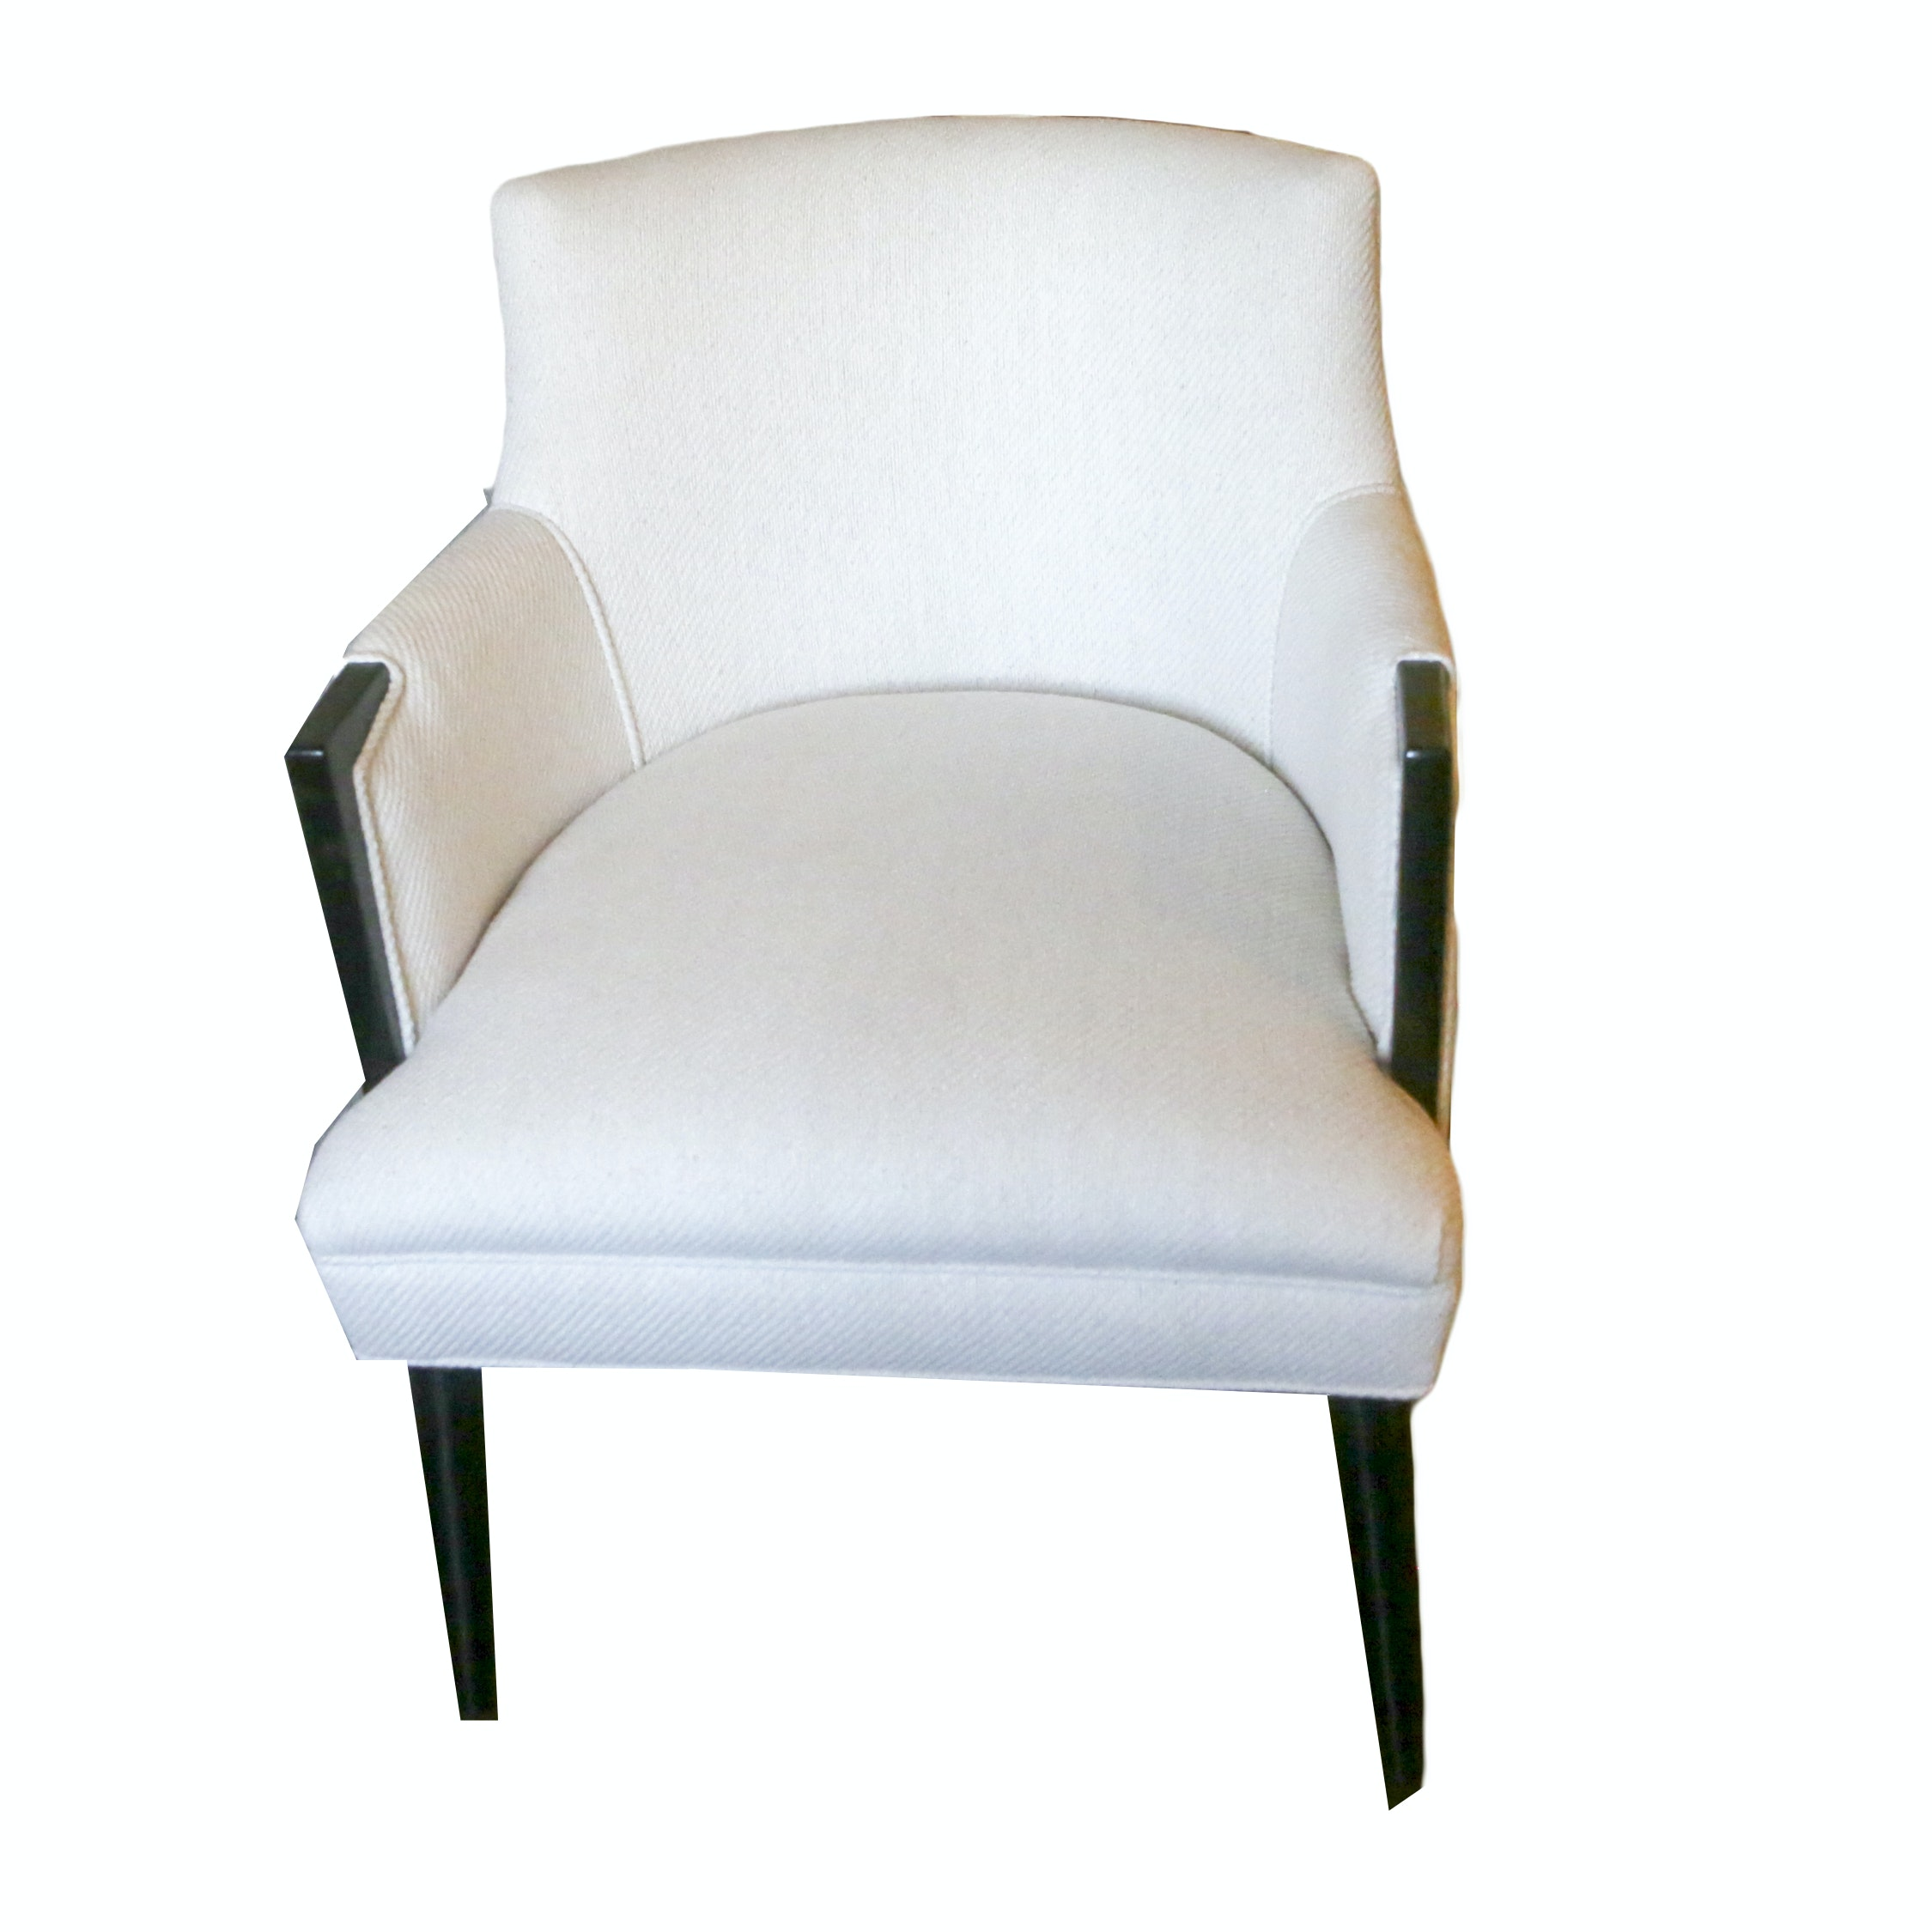 White Upholstered Tub Style Armchair